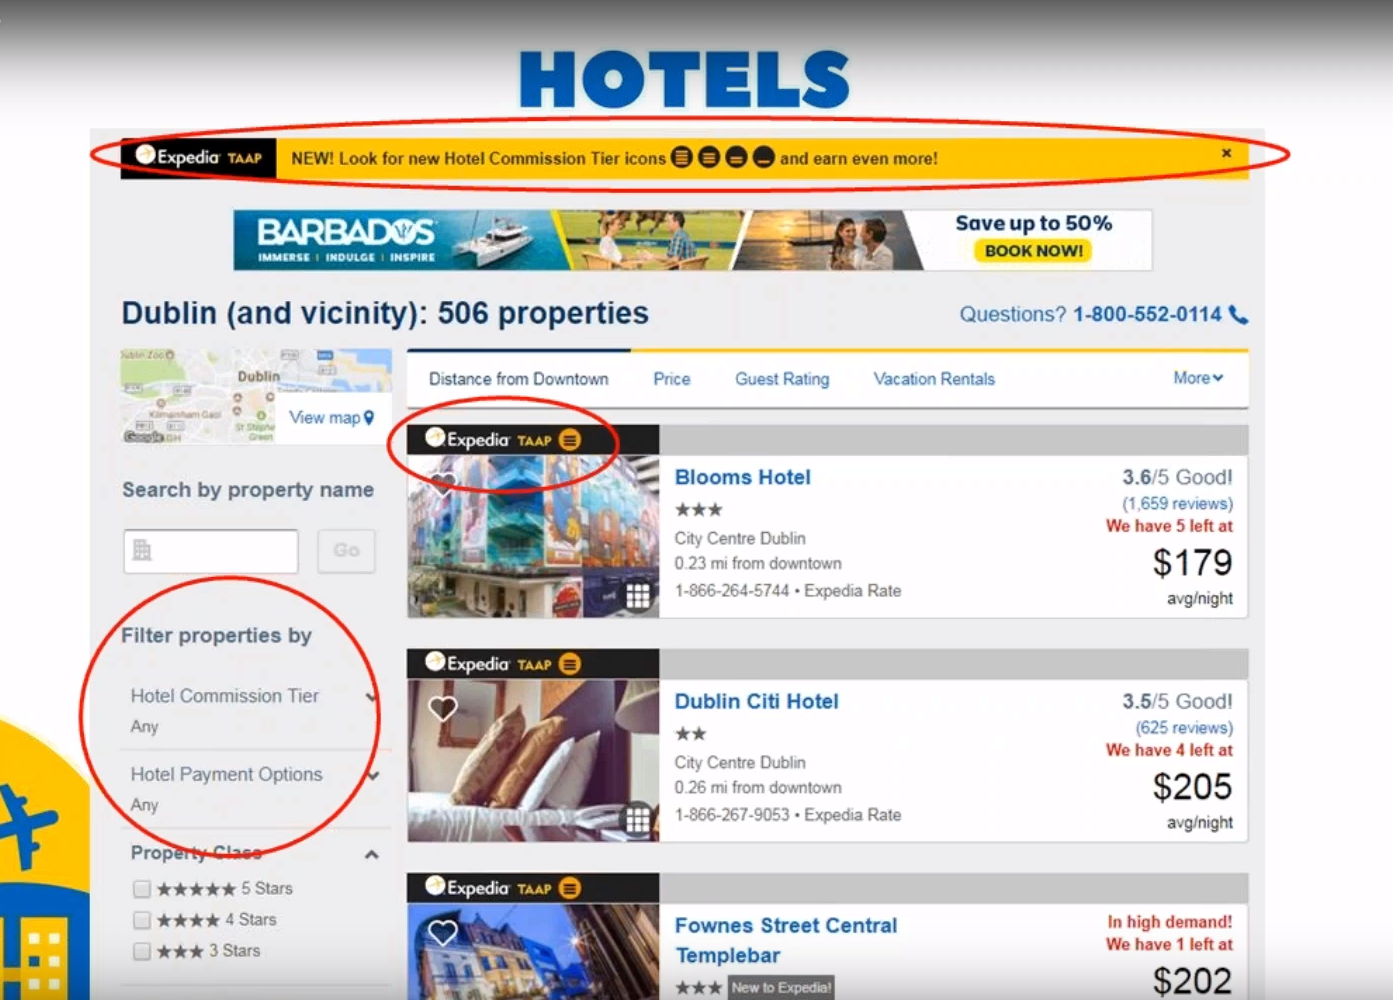 Expedia TAAP interface